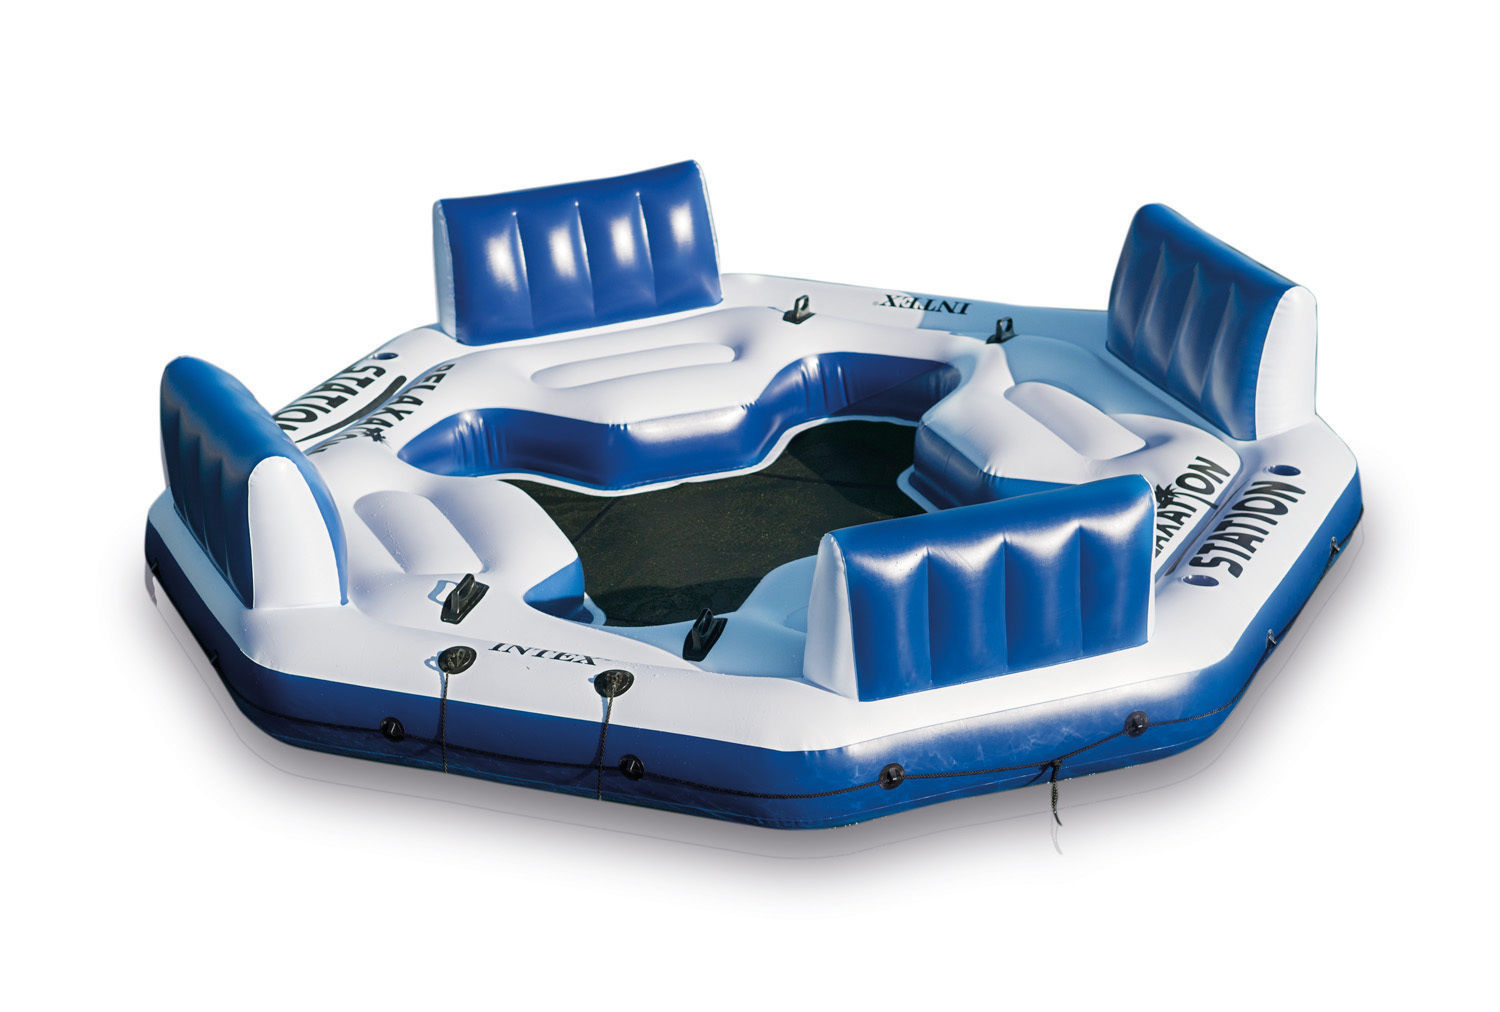 Relaxation Station Pool Lounge: Intex Pacific Paradise Relaxation Station Water Lounge 4